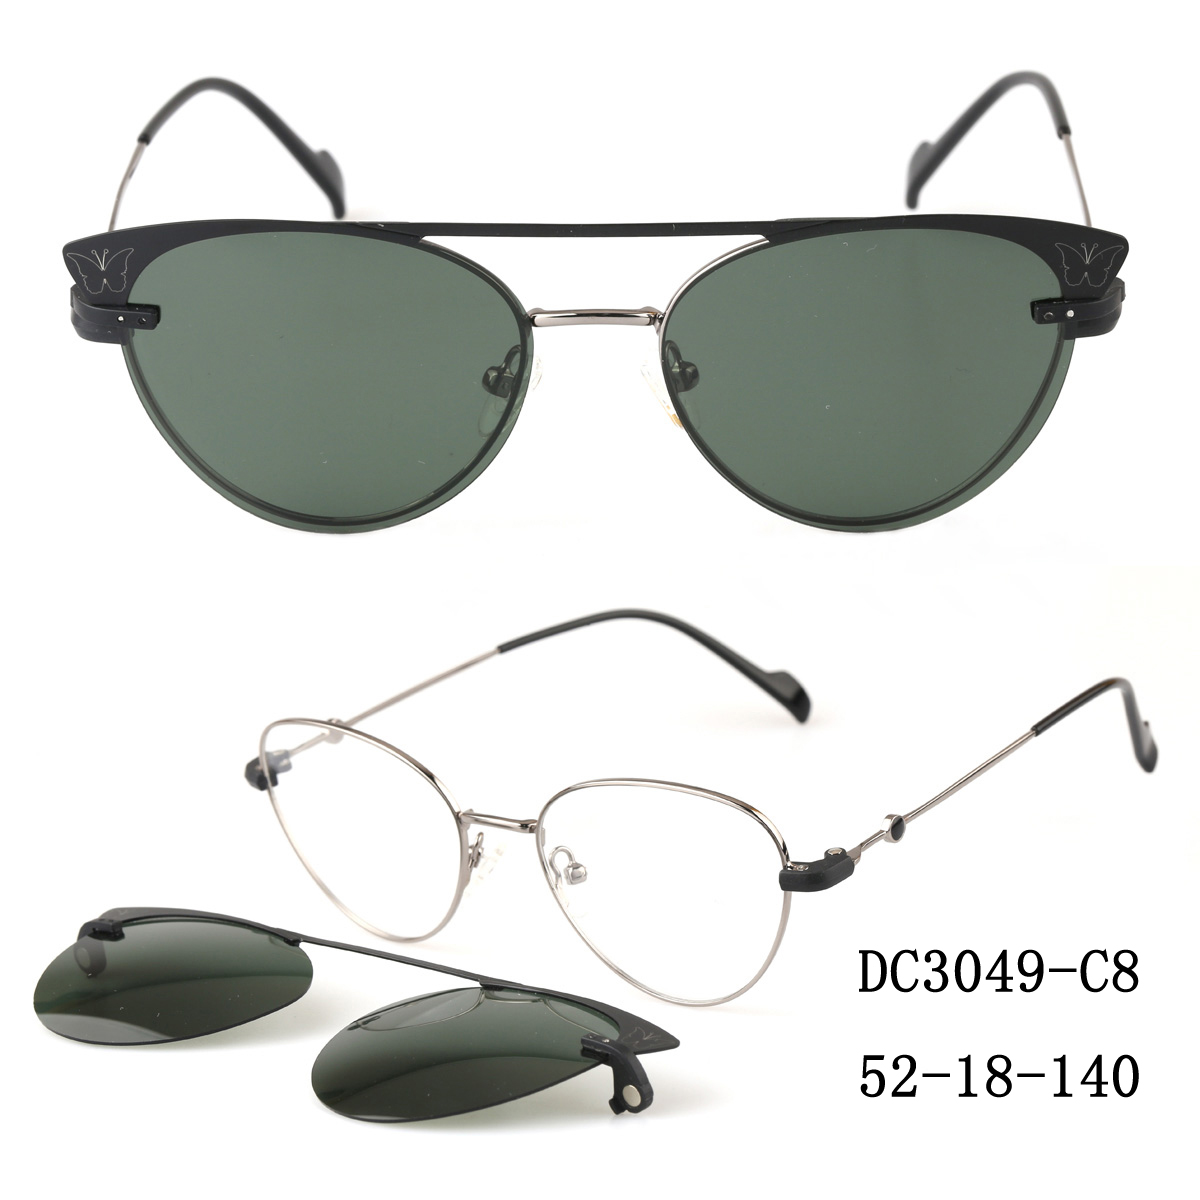 Clip On Shades For Glasses Wholesale, Oem Odm Clip On Sunglasses Shades